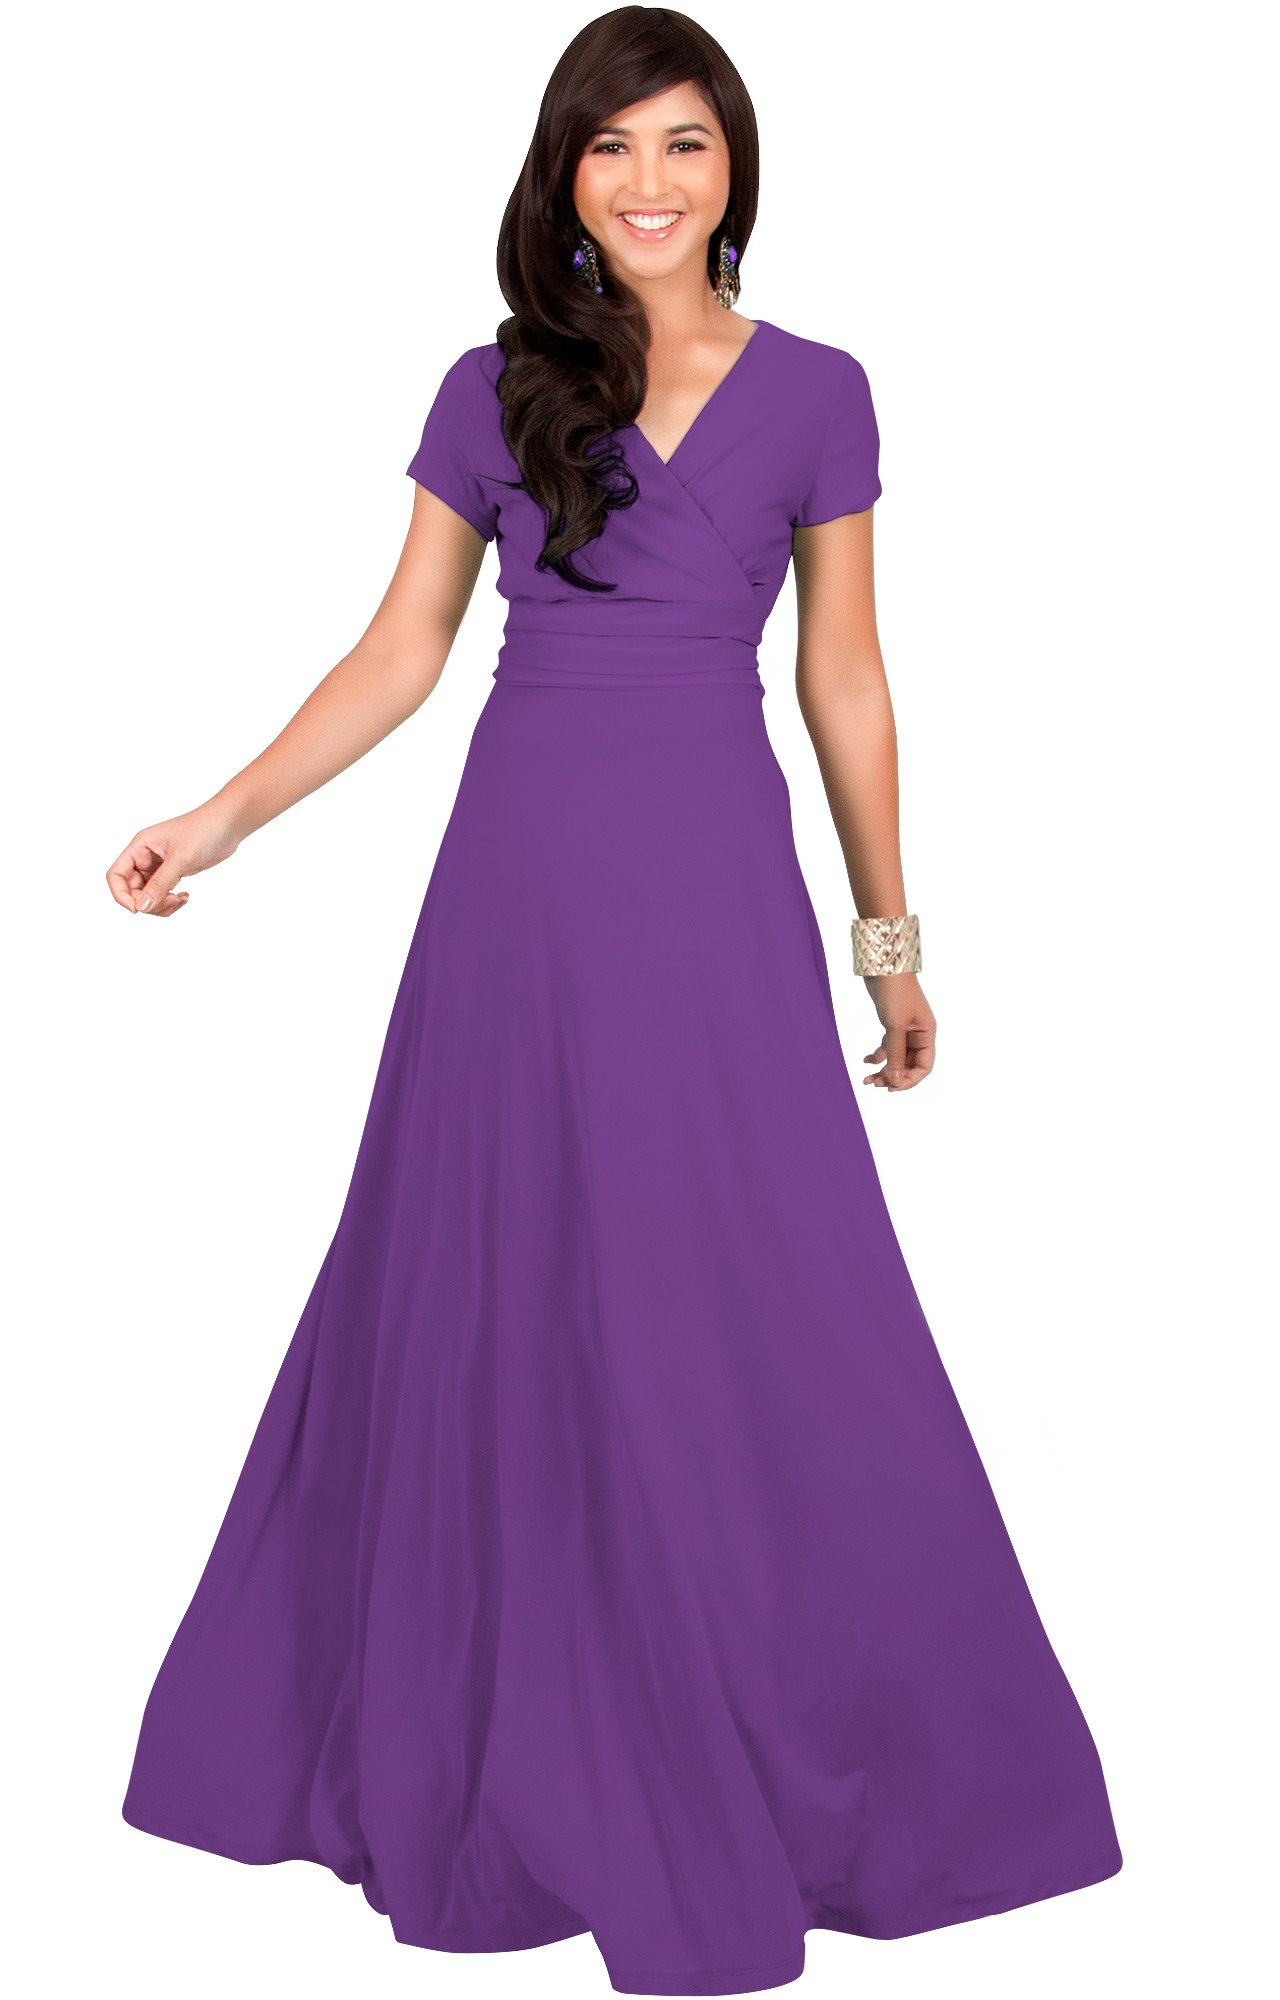 7f90773e54 KOH KOH Womens Long Cap Short Sleeve V-Neck Flowy Cocktail Slimming Summer  Sexy Casual Formal Sun Sundress Work Cute Gown Gowns Maxi Dress Dresses